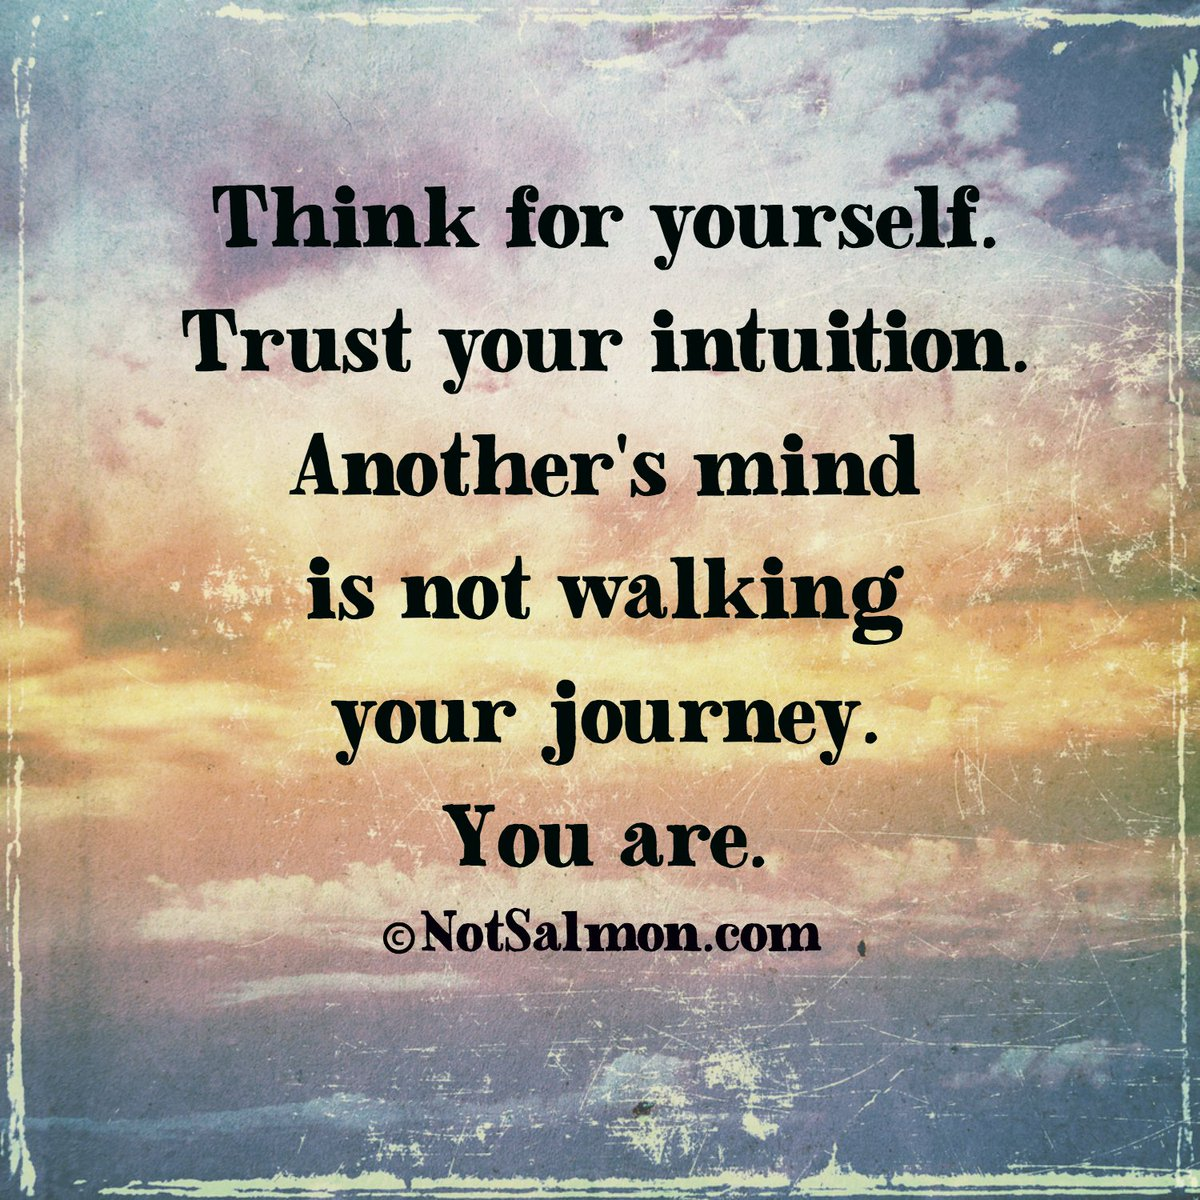 Think for yourself. Trust your intuition. Another's mind is not walking your journey. You are. https://t.co/exVcceK6s5